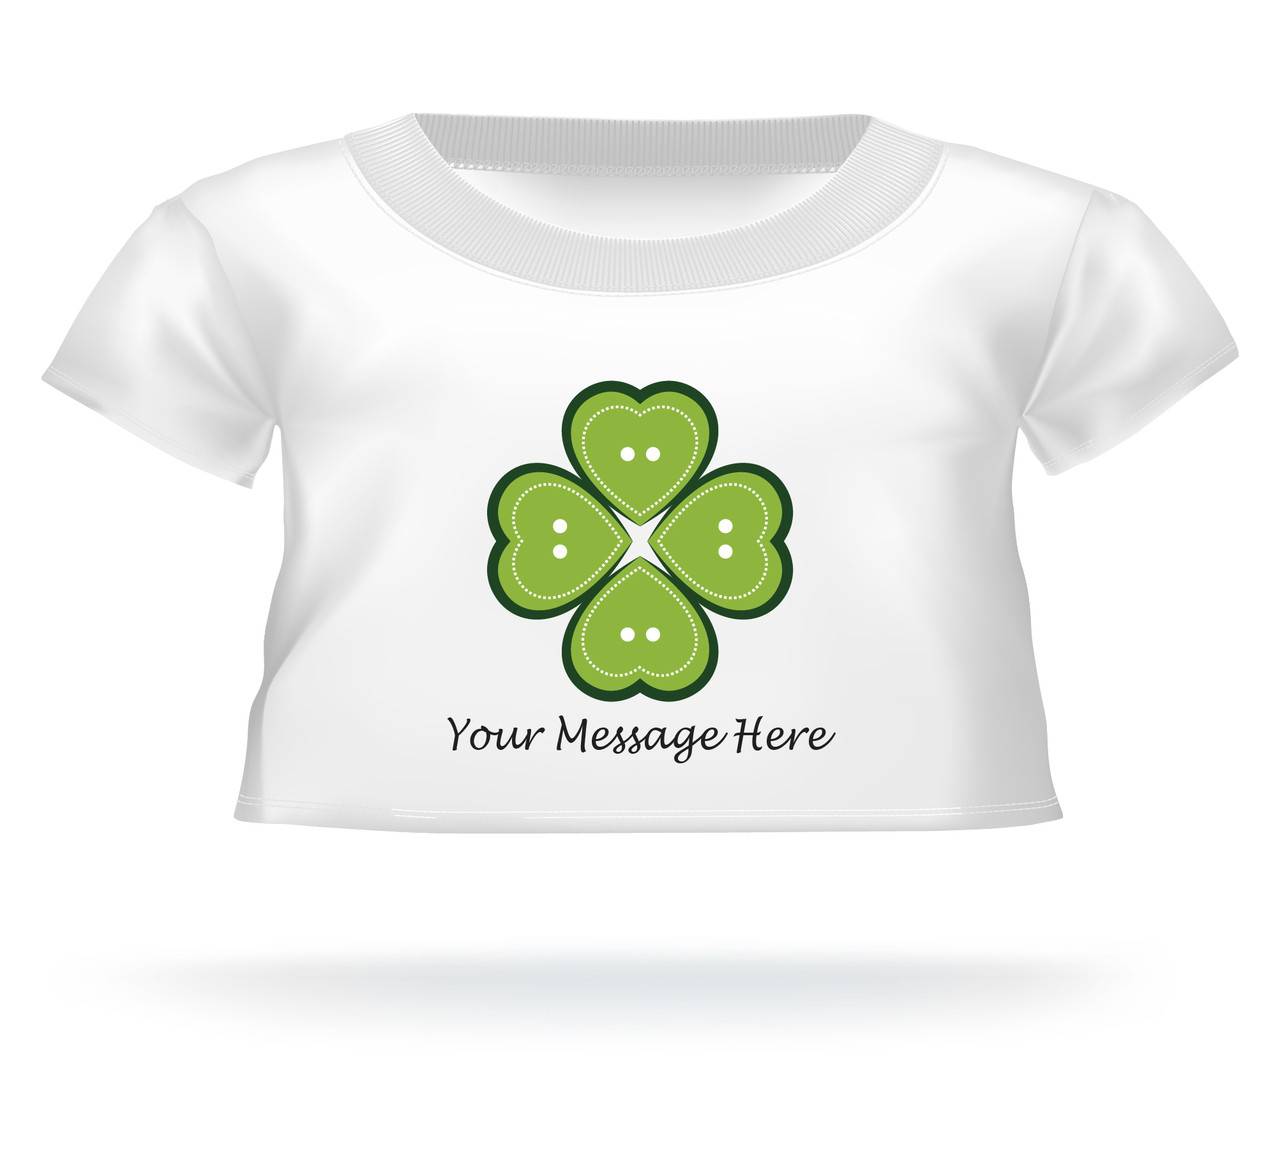 ff7641821 St. Patrick's Day Heart 4 Leaf Clover Giant Teddy Bear Personalized Shirt